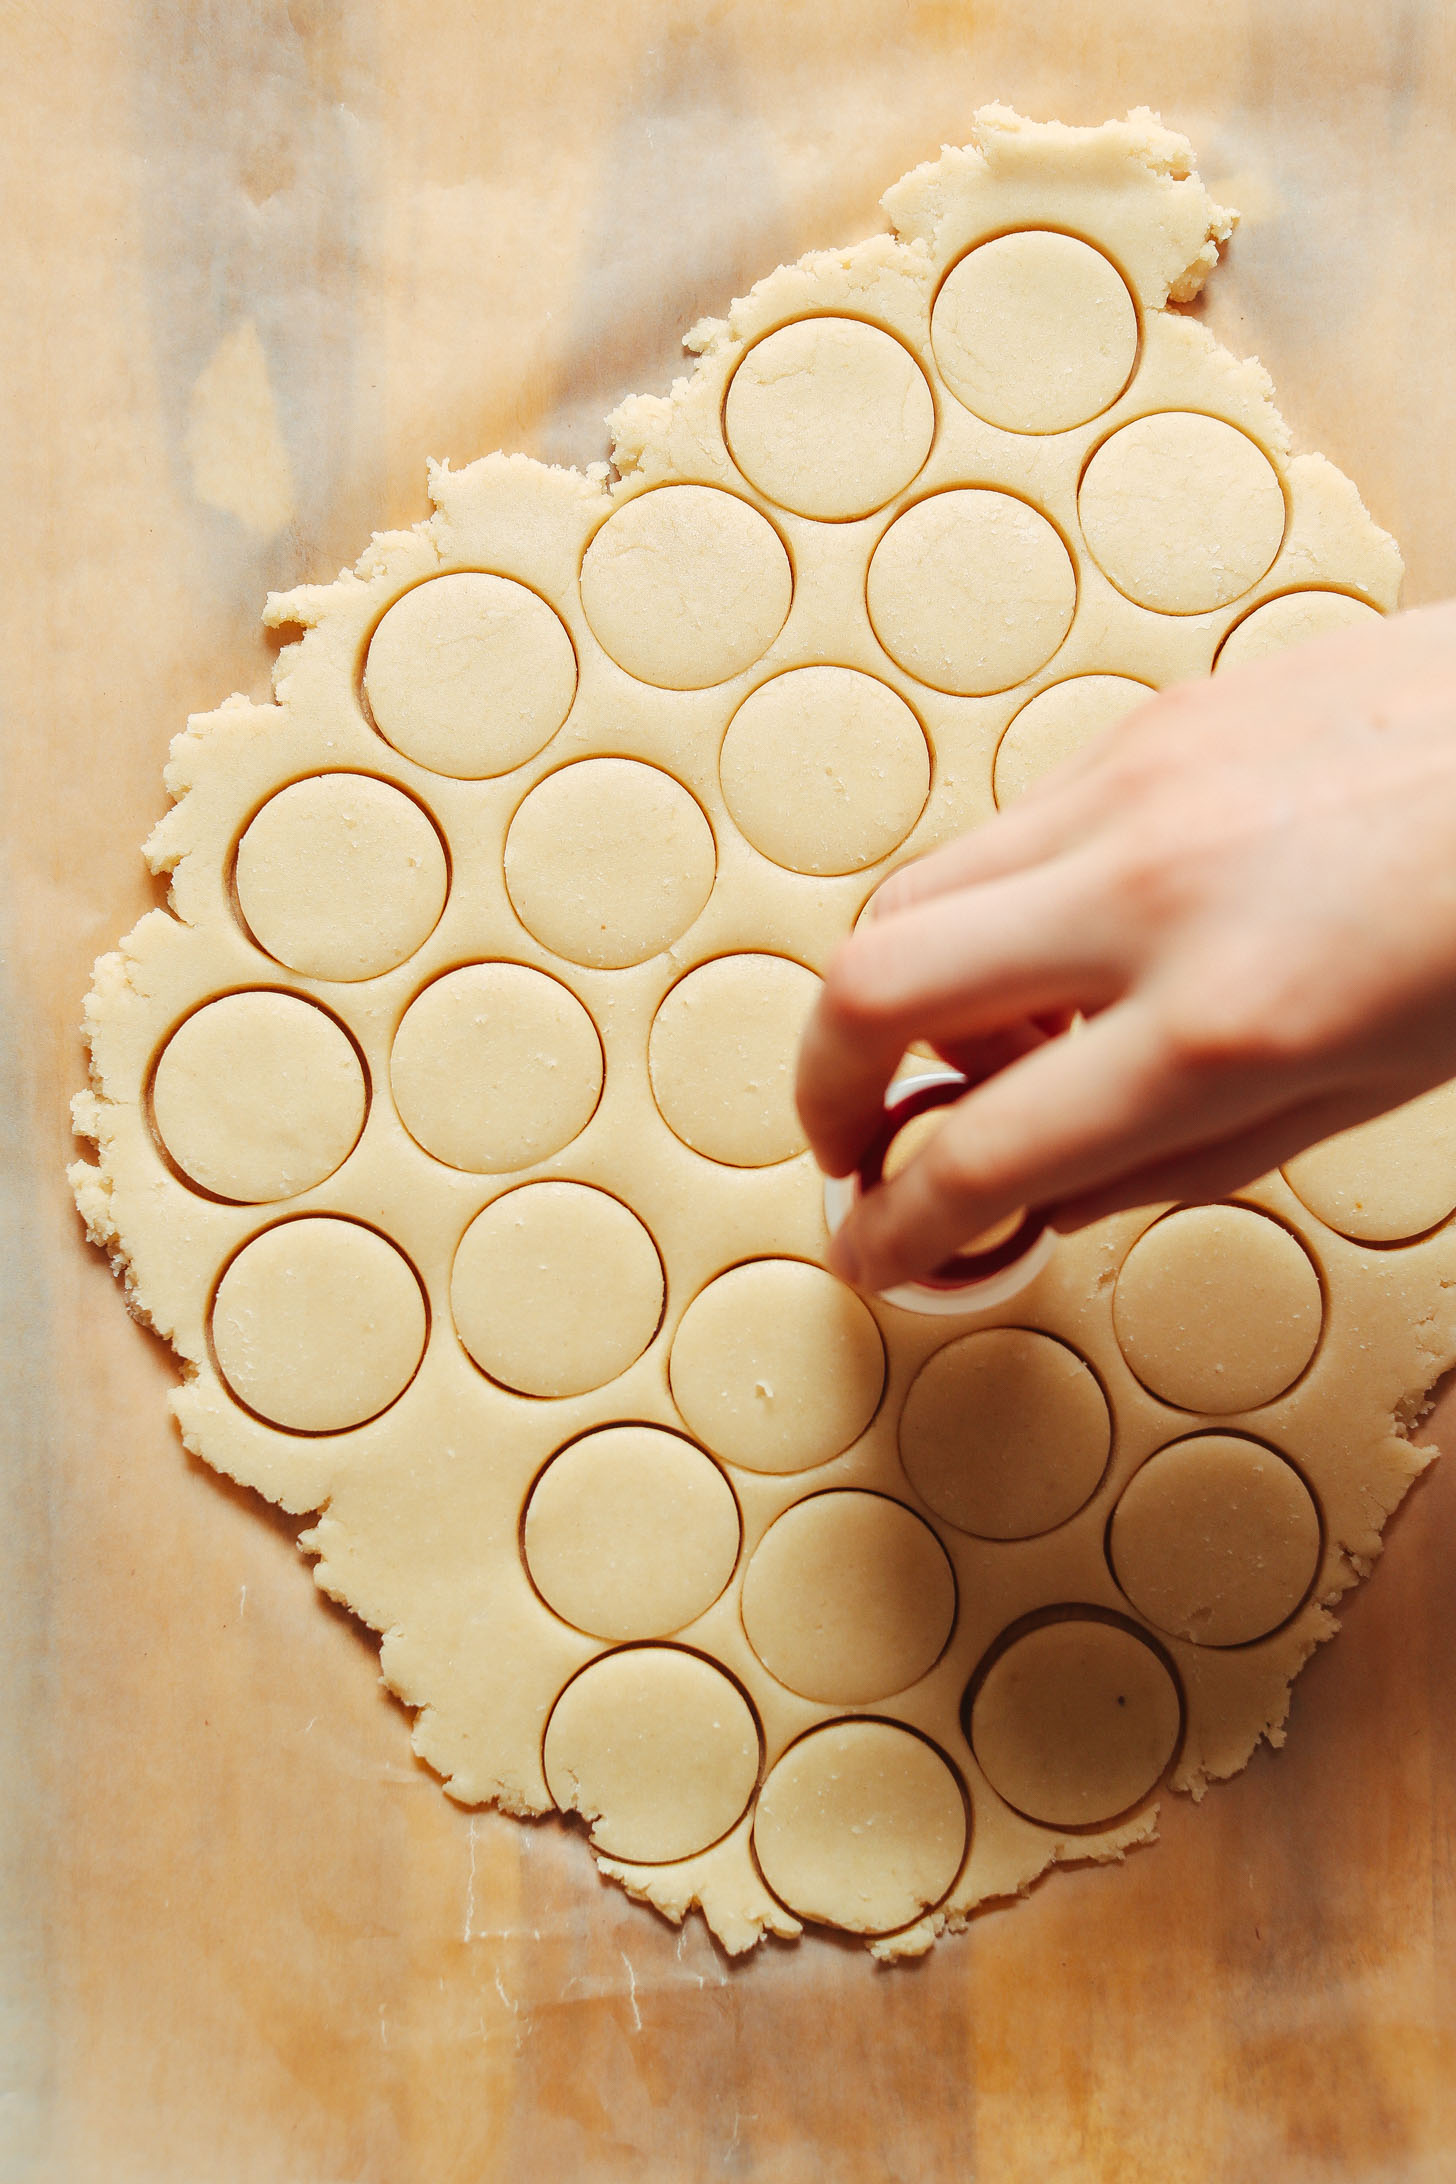 Using a small round cookie cutter to create vanilla wafers shapes